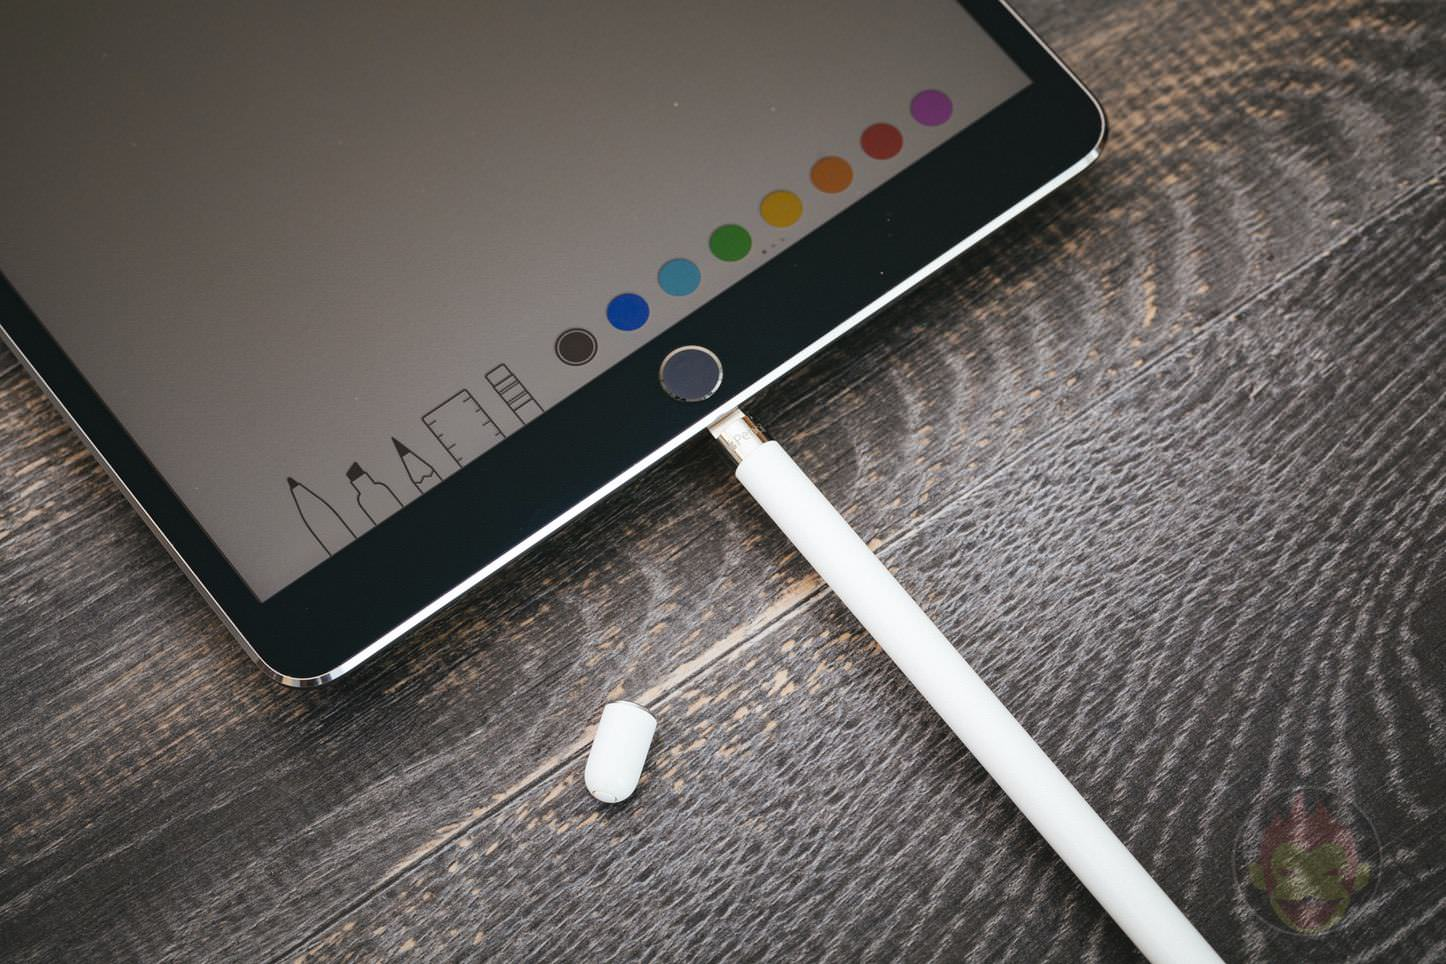 new-ipad-pro-coming-soon-with-new-apple-pencil-01.jpg